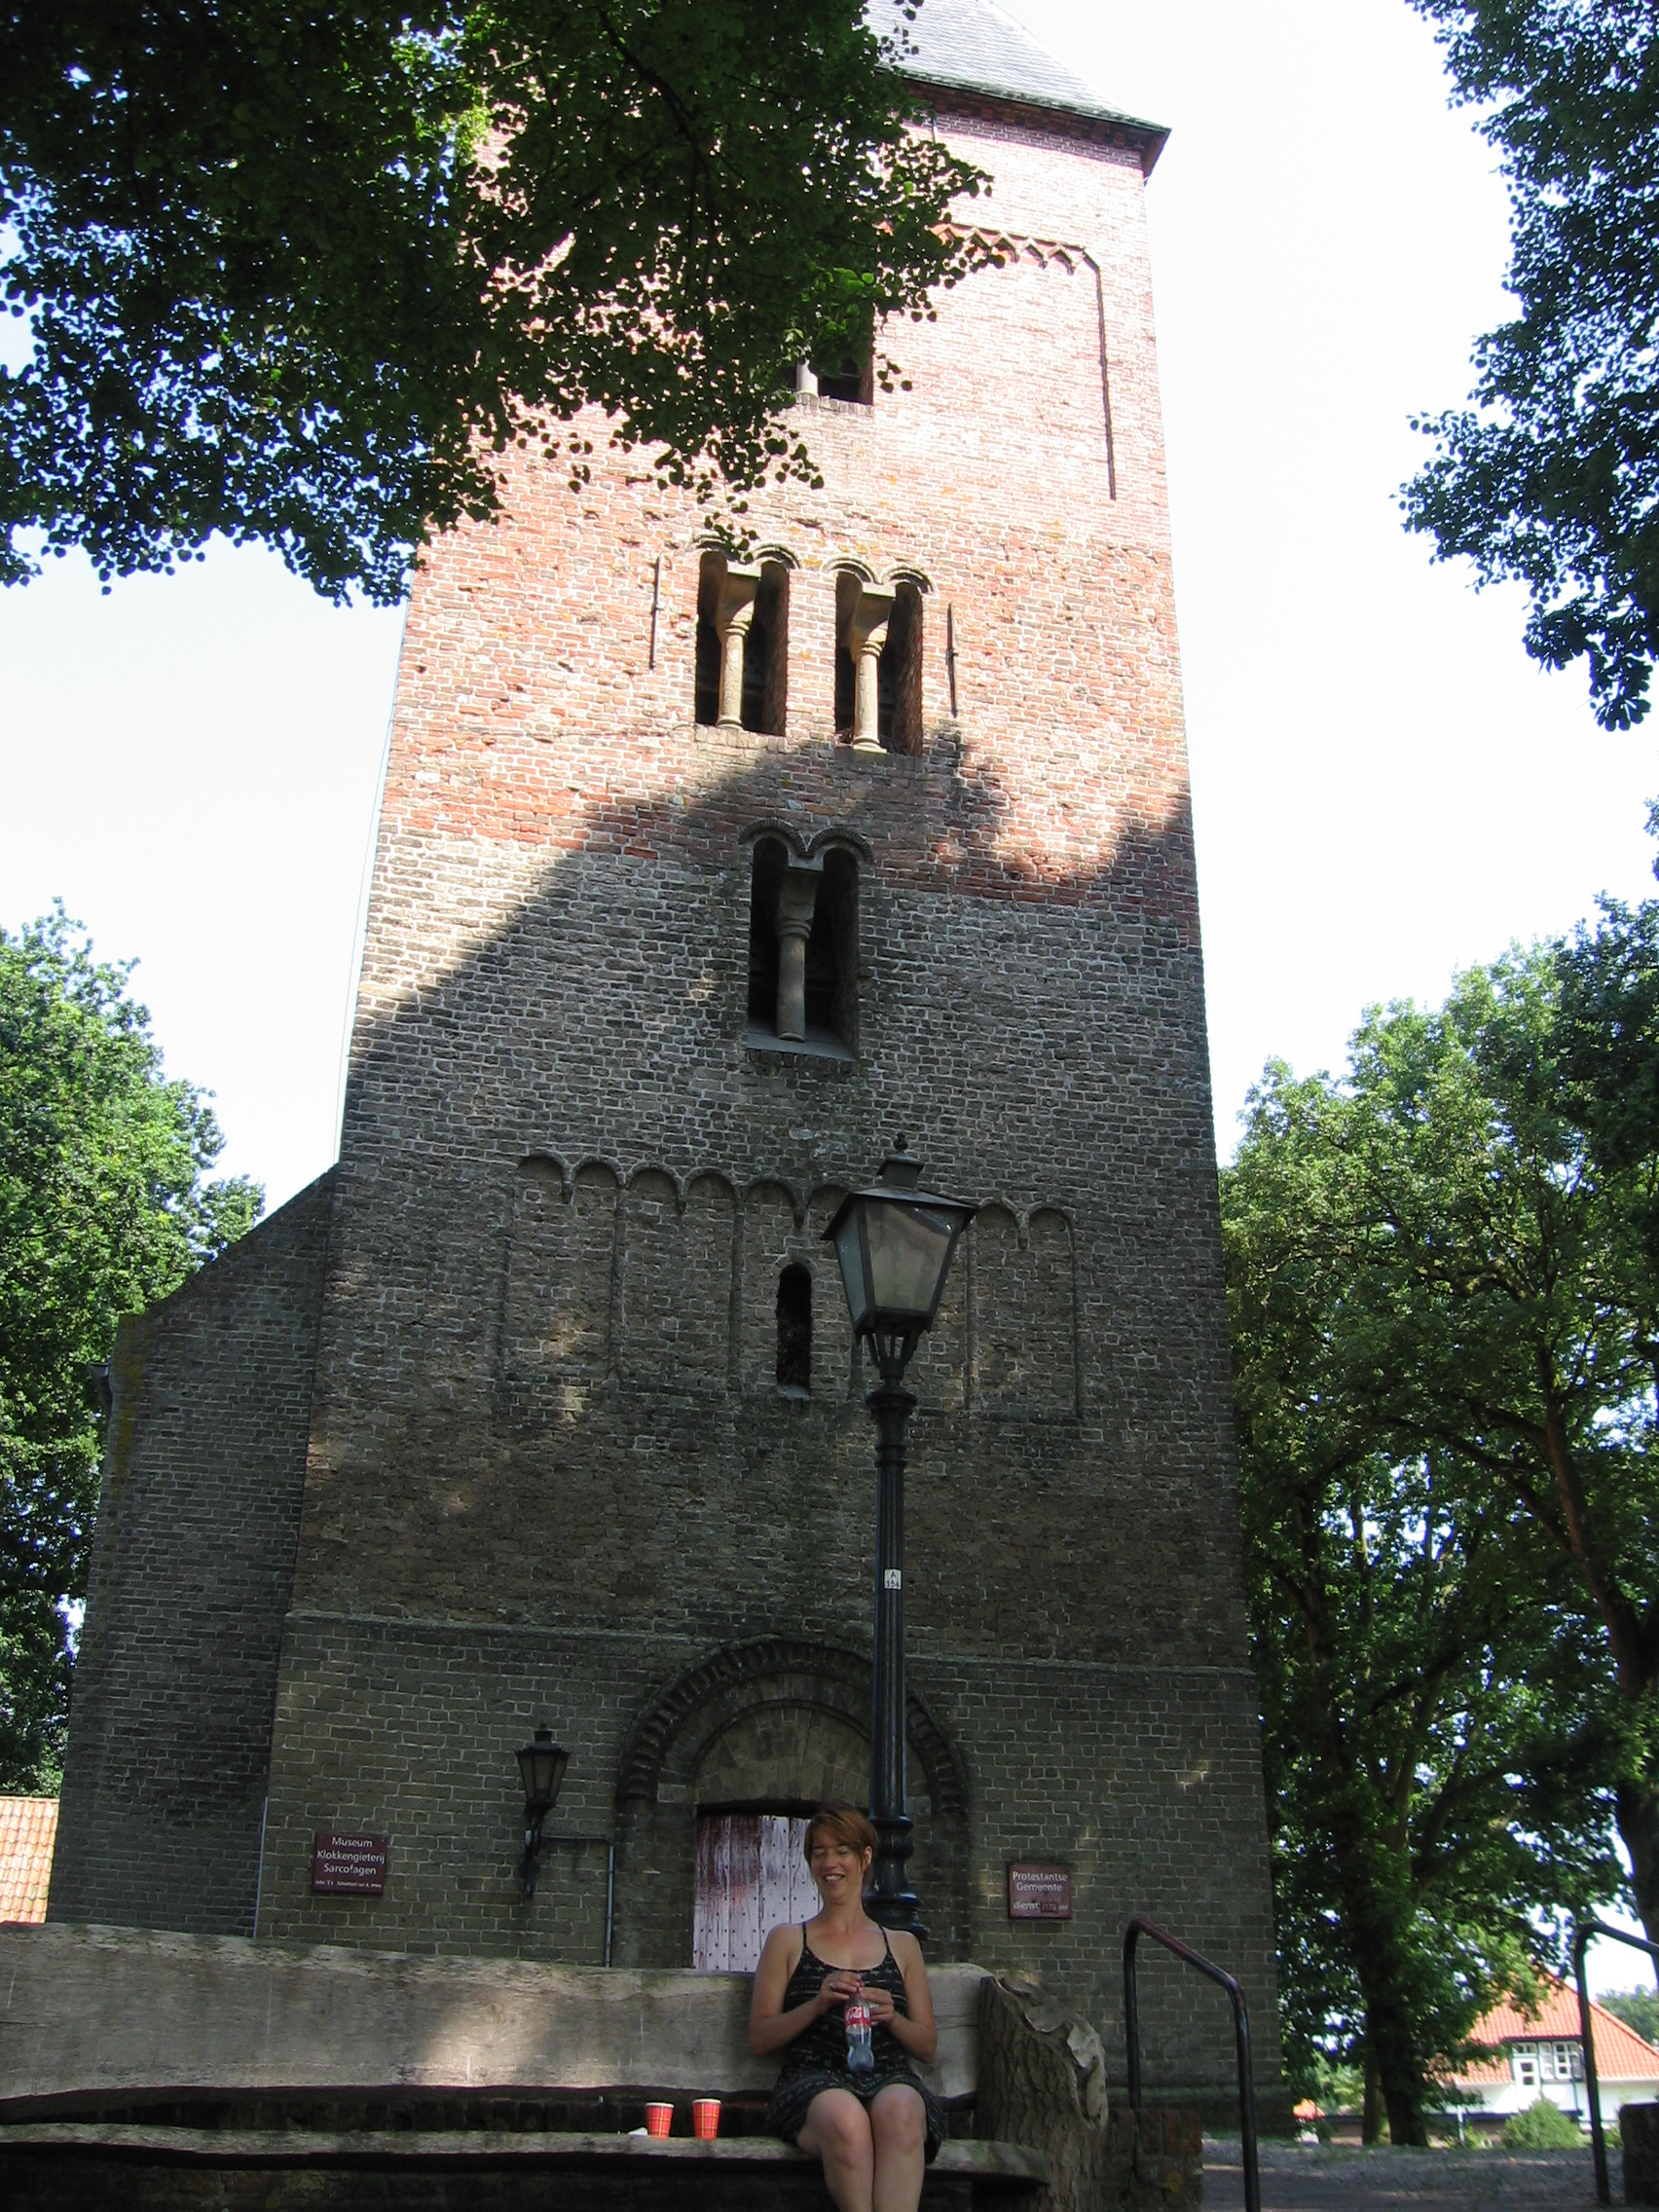 Romanesque tower of church at Vries